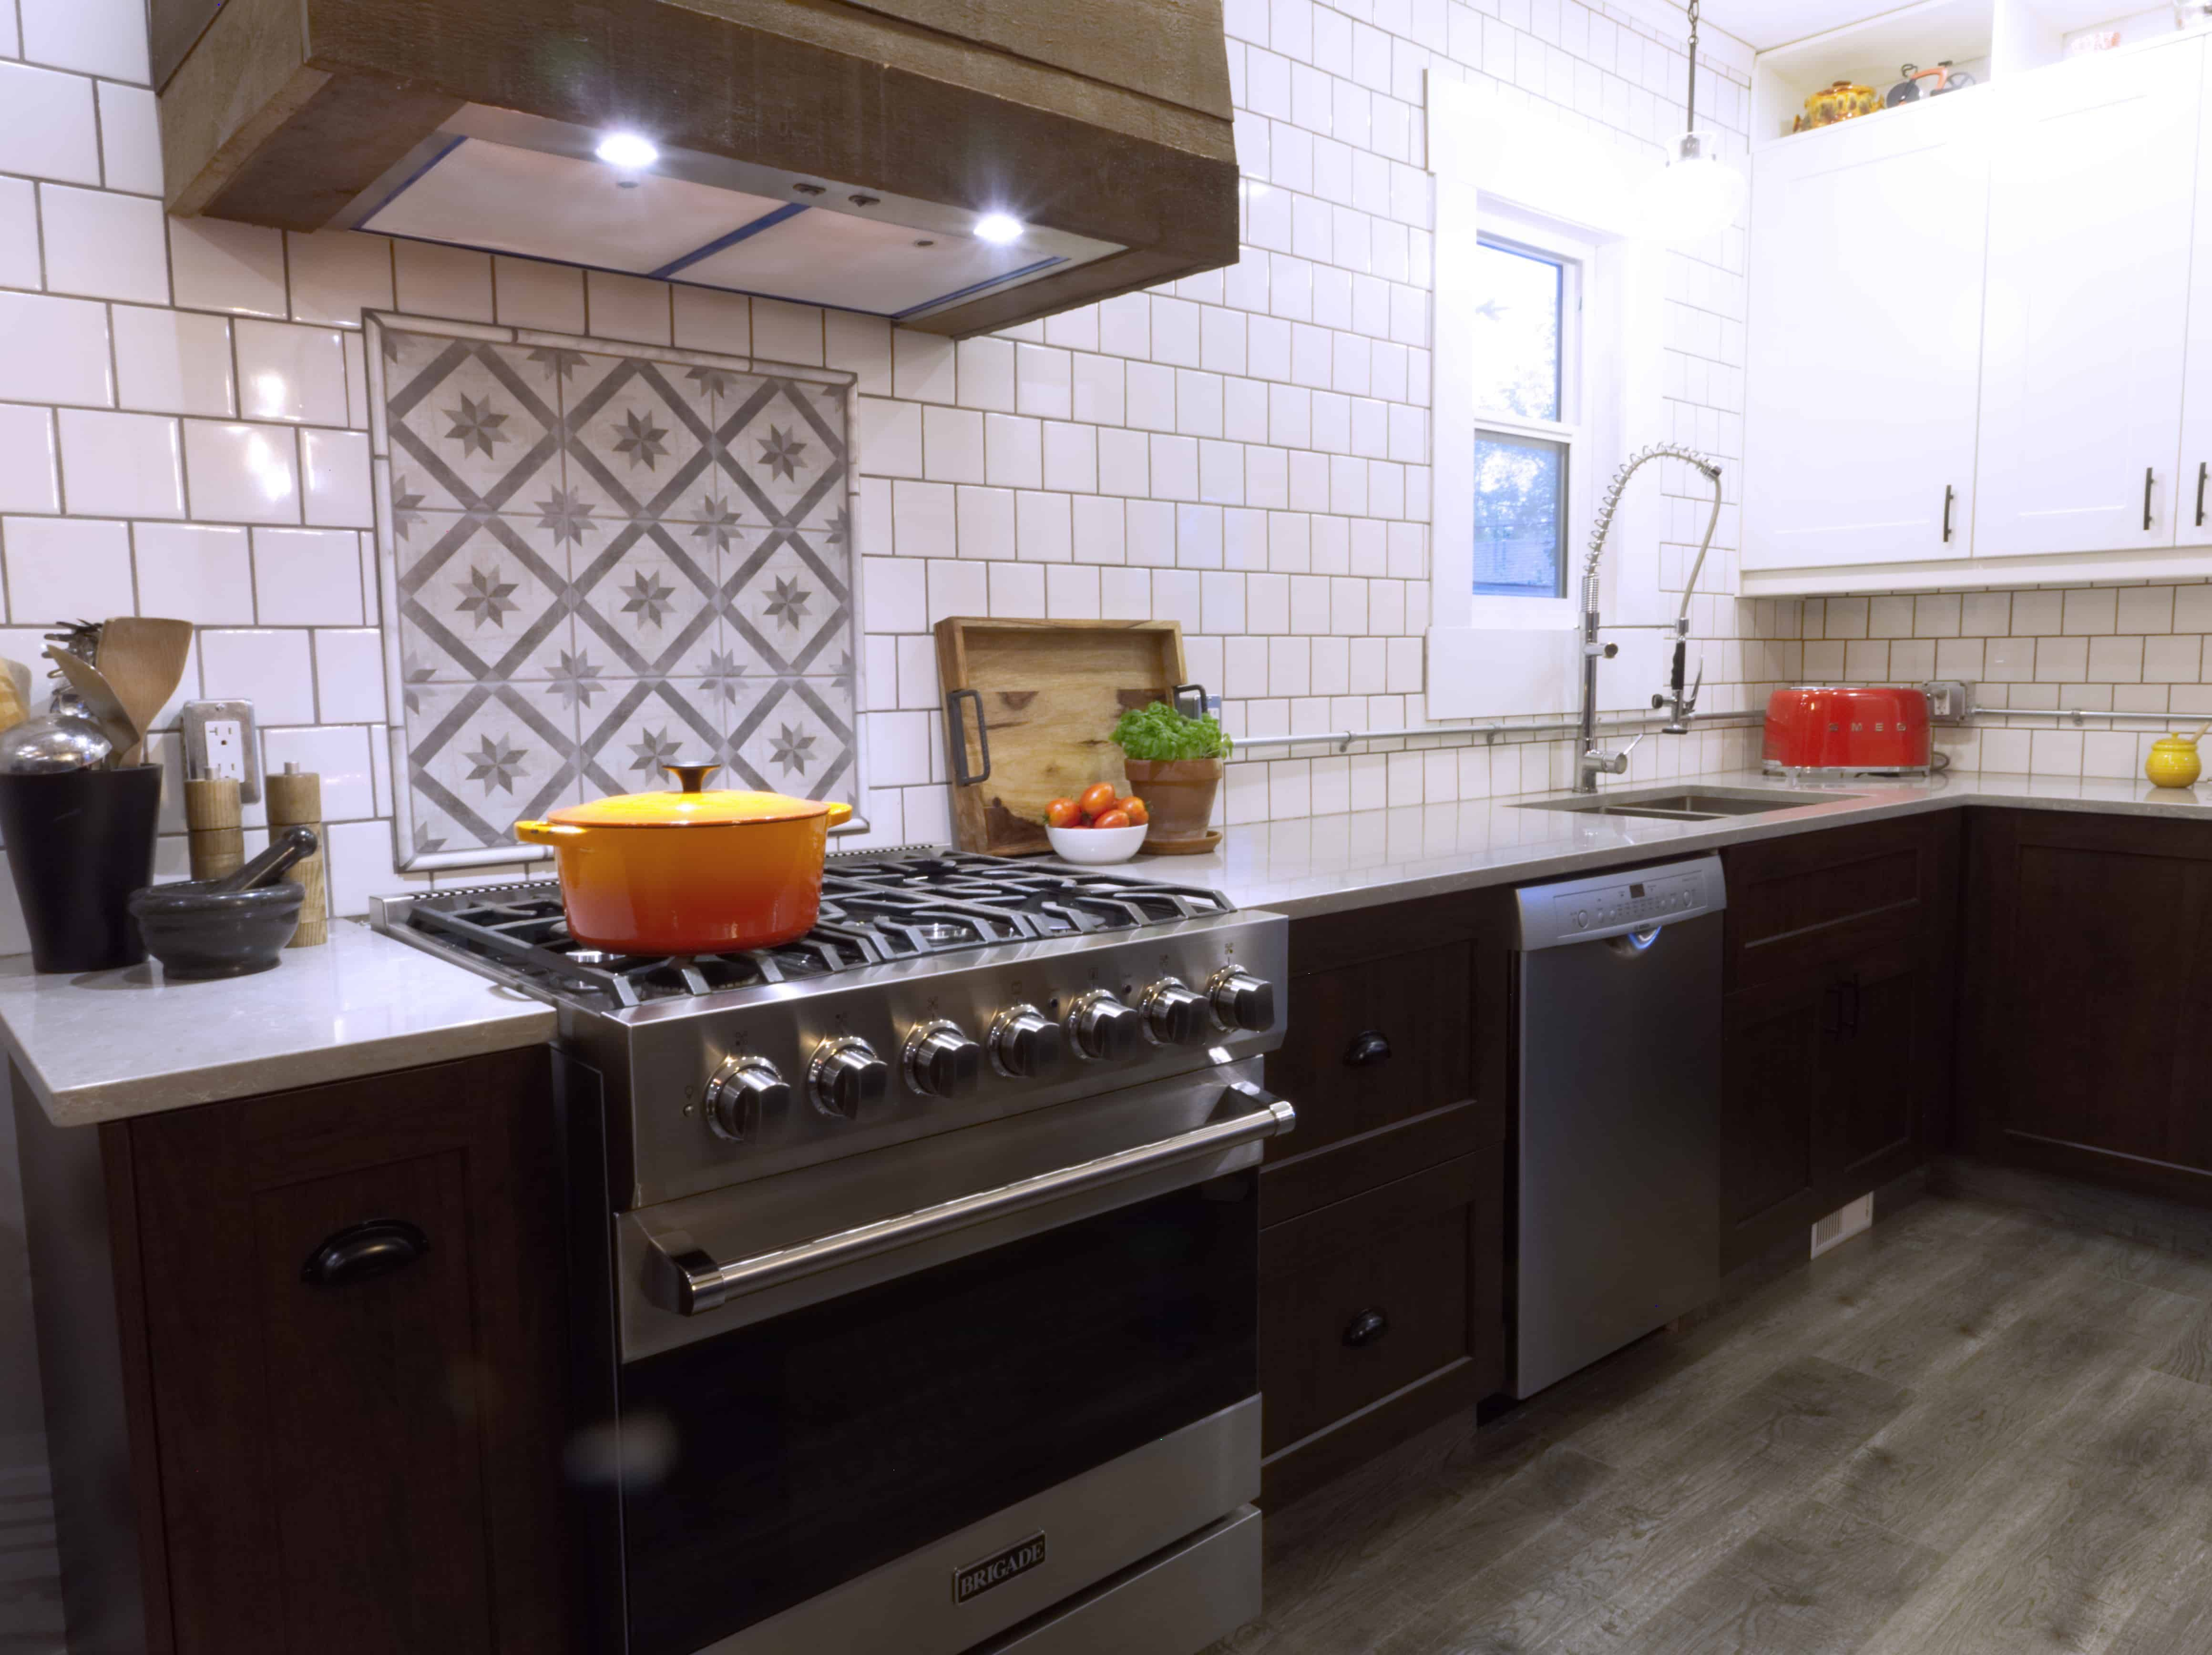 Ikea Kitchen Review Pros Cons And Overall Quality The Homestud The Homestud In 2020 Ikea Kitchen Reviews Cheap Kitchen Cabinets Kitchen Cabinets Uk